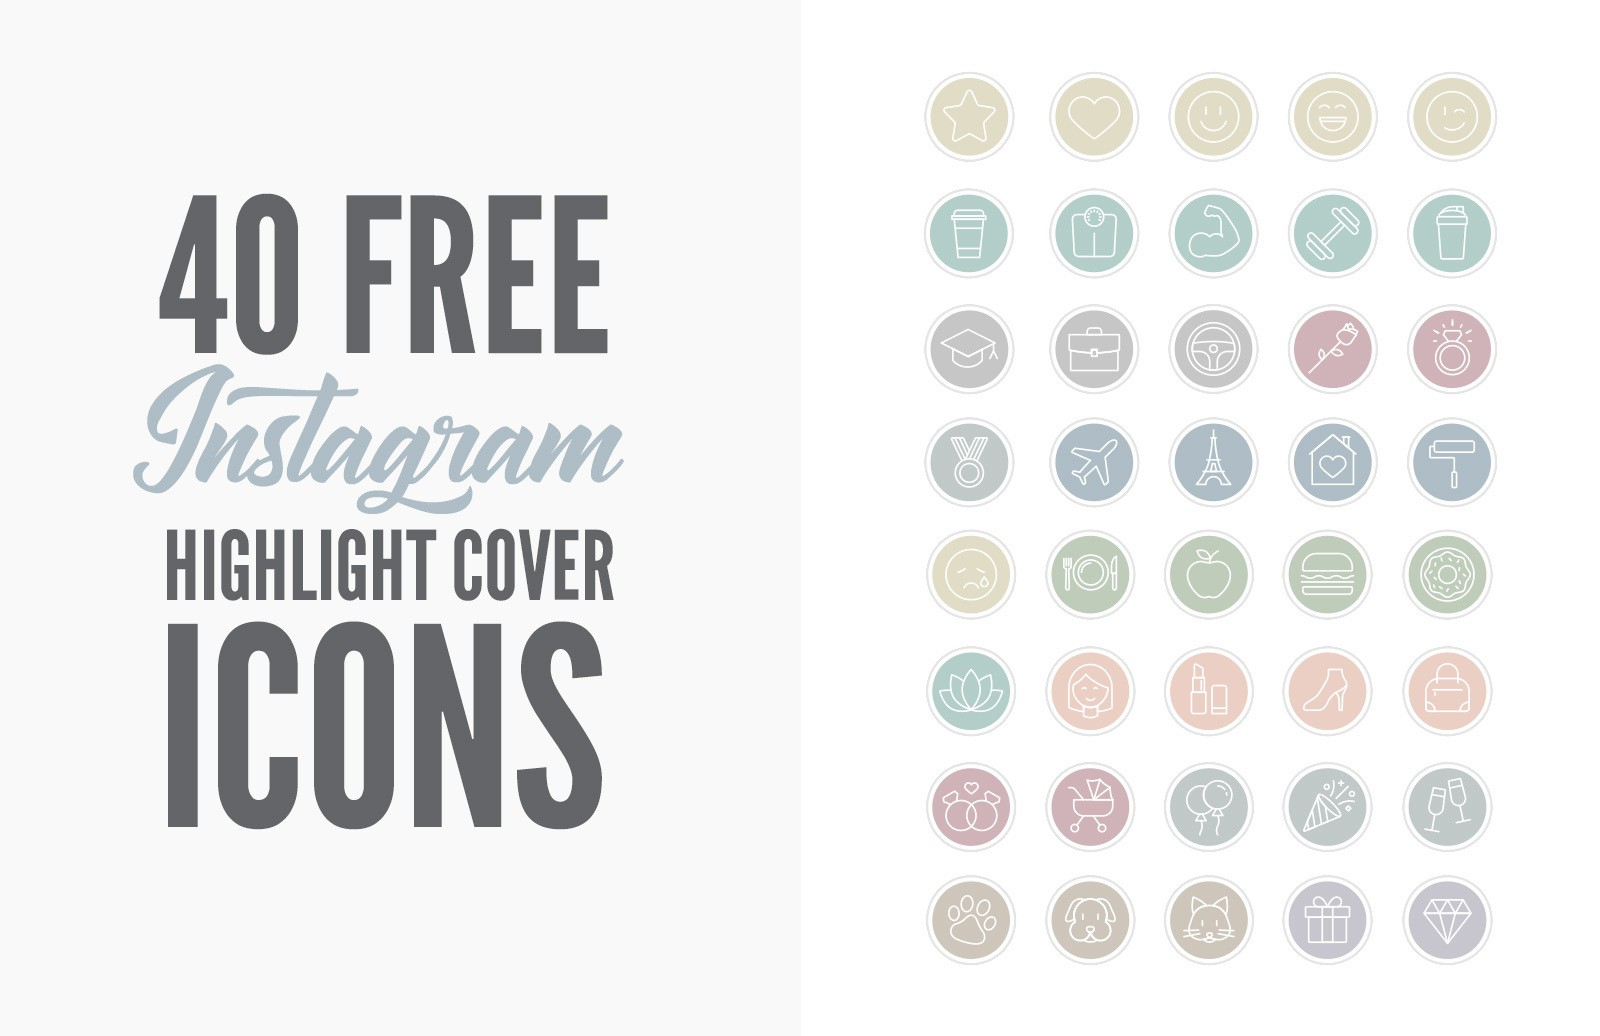 Instagram Highlight Cover Icons Preview 1A